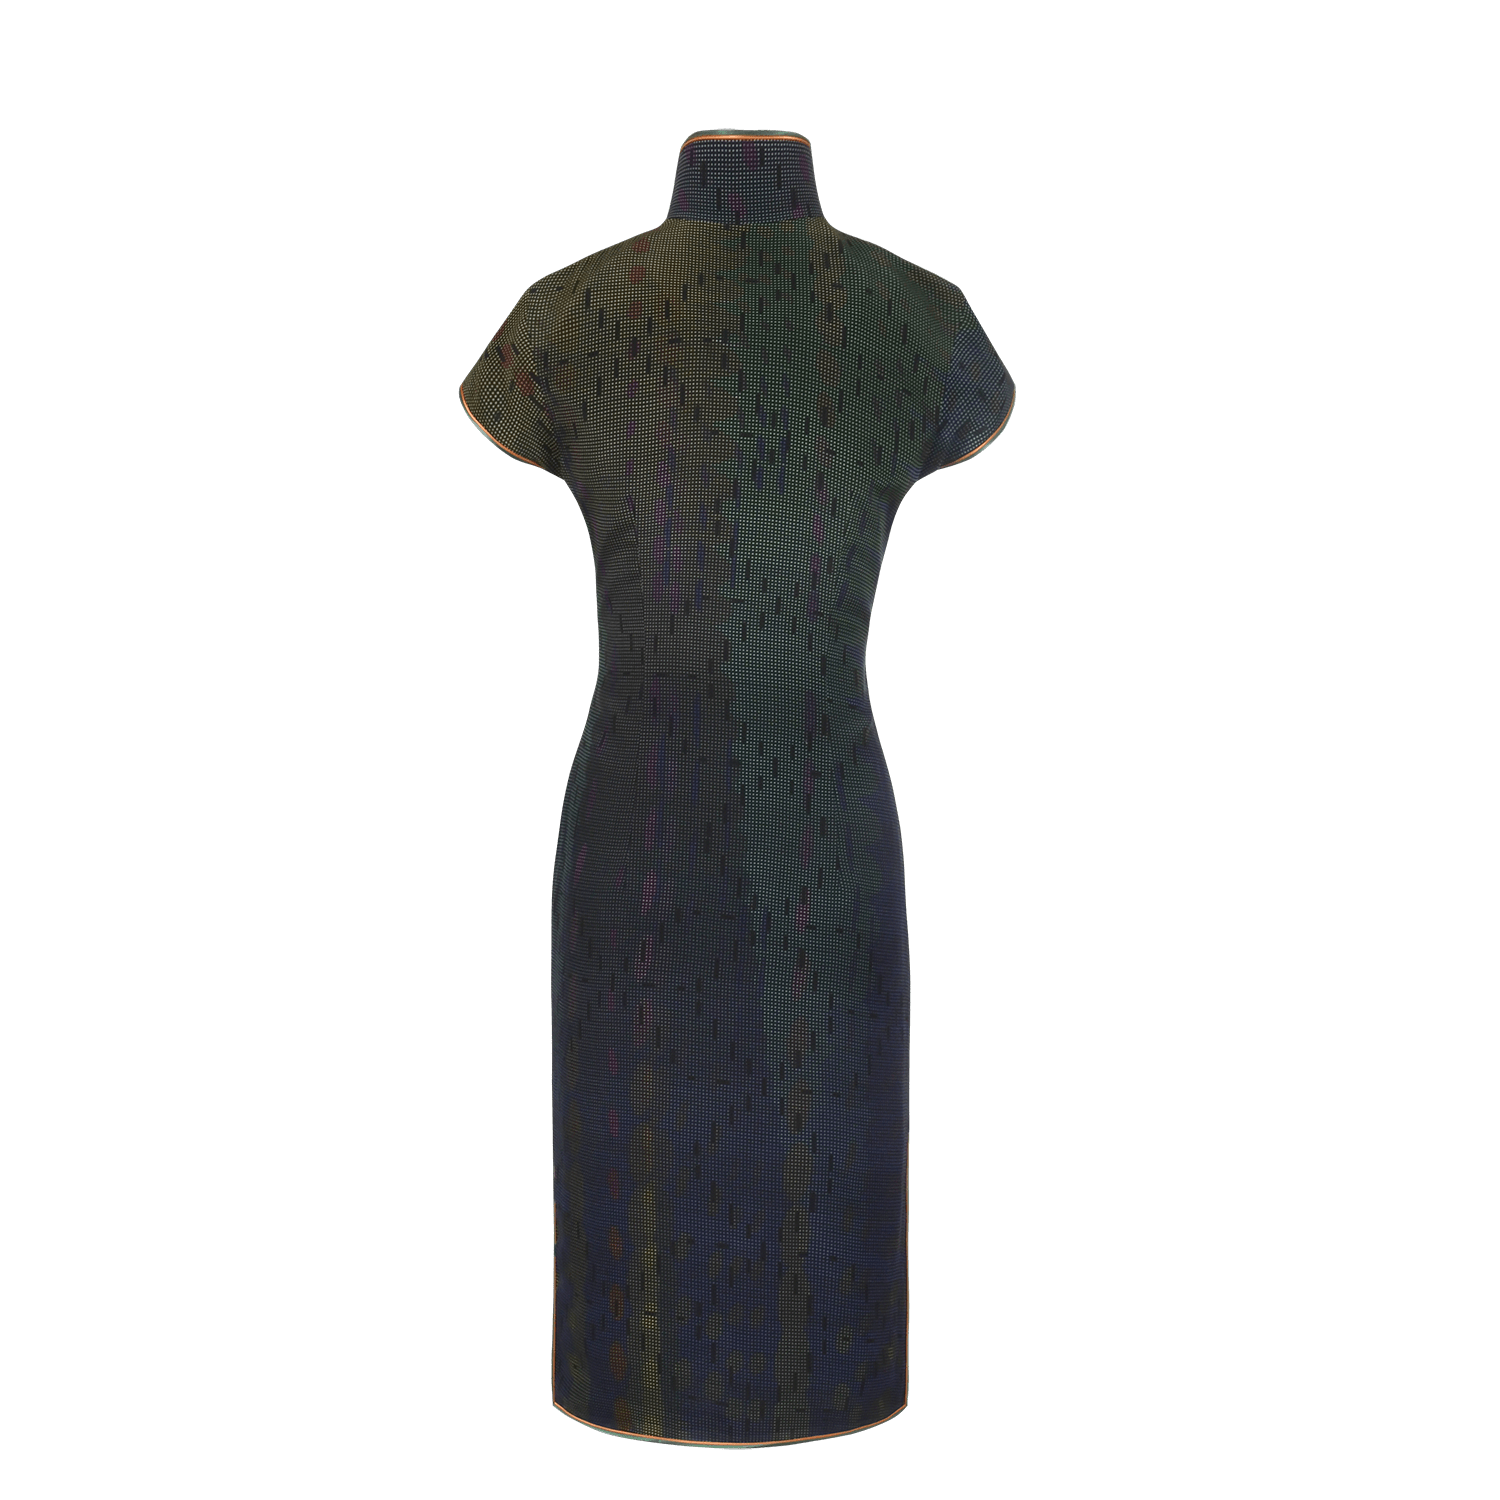 【SUNRISE SUNSET】100% Silk Cheongsam - THE SPARKLE COLLECTION by GERMAN POOL